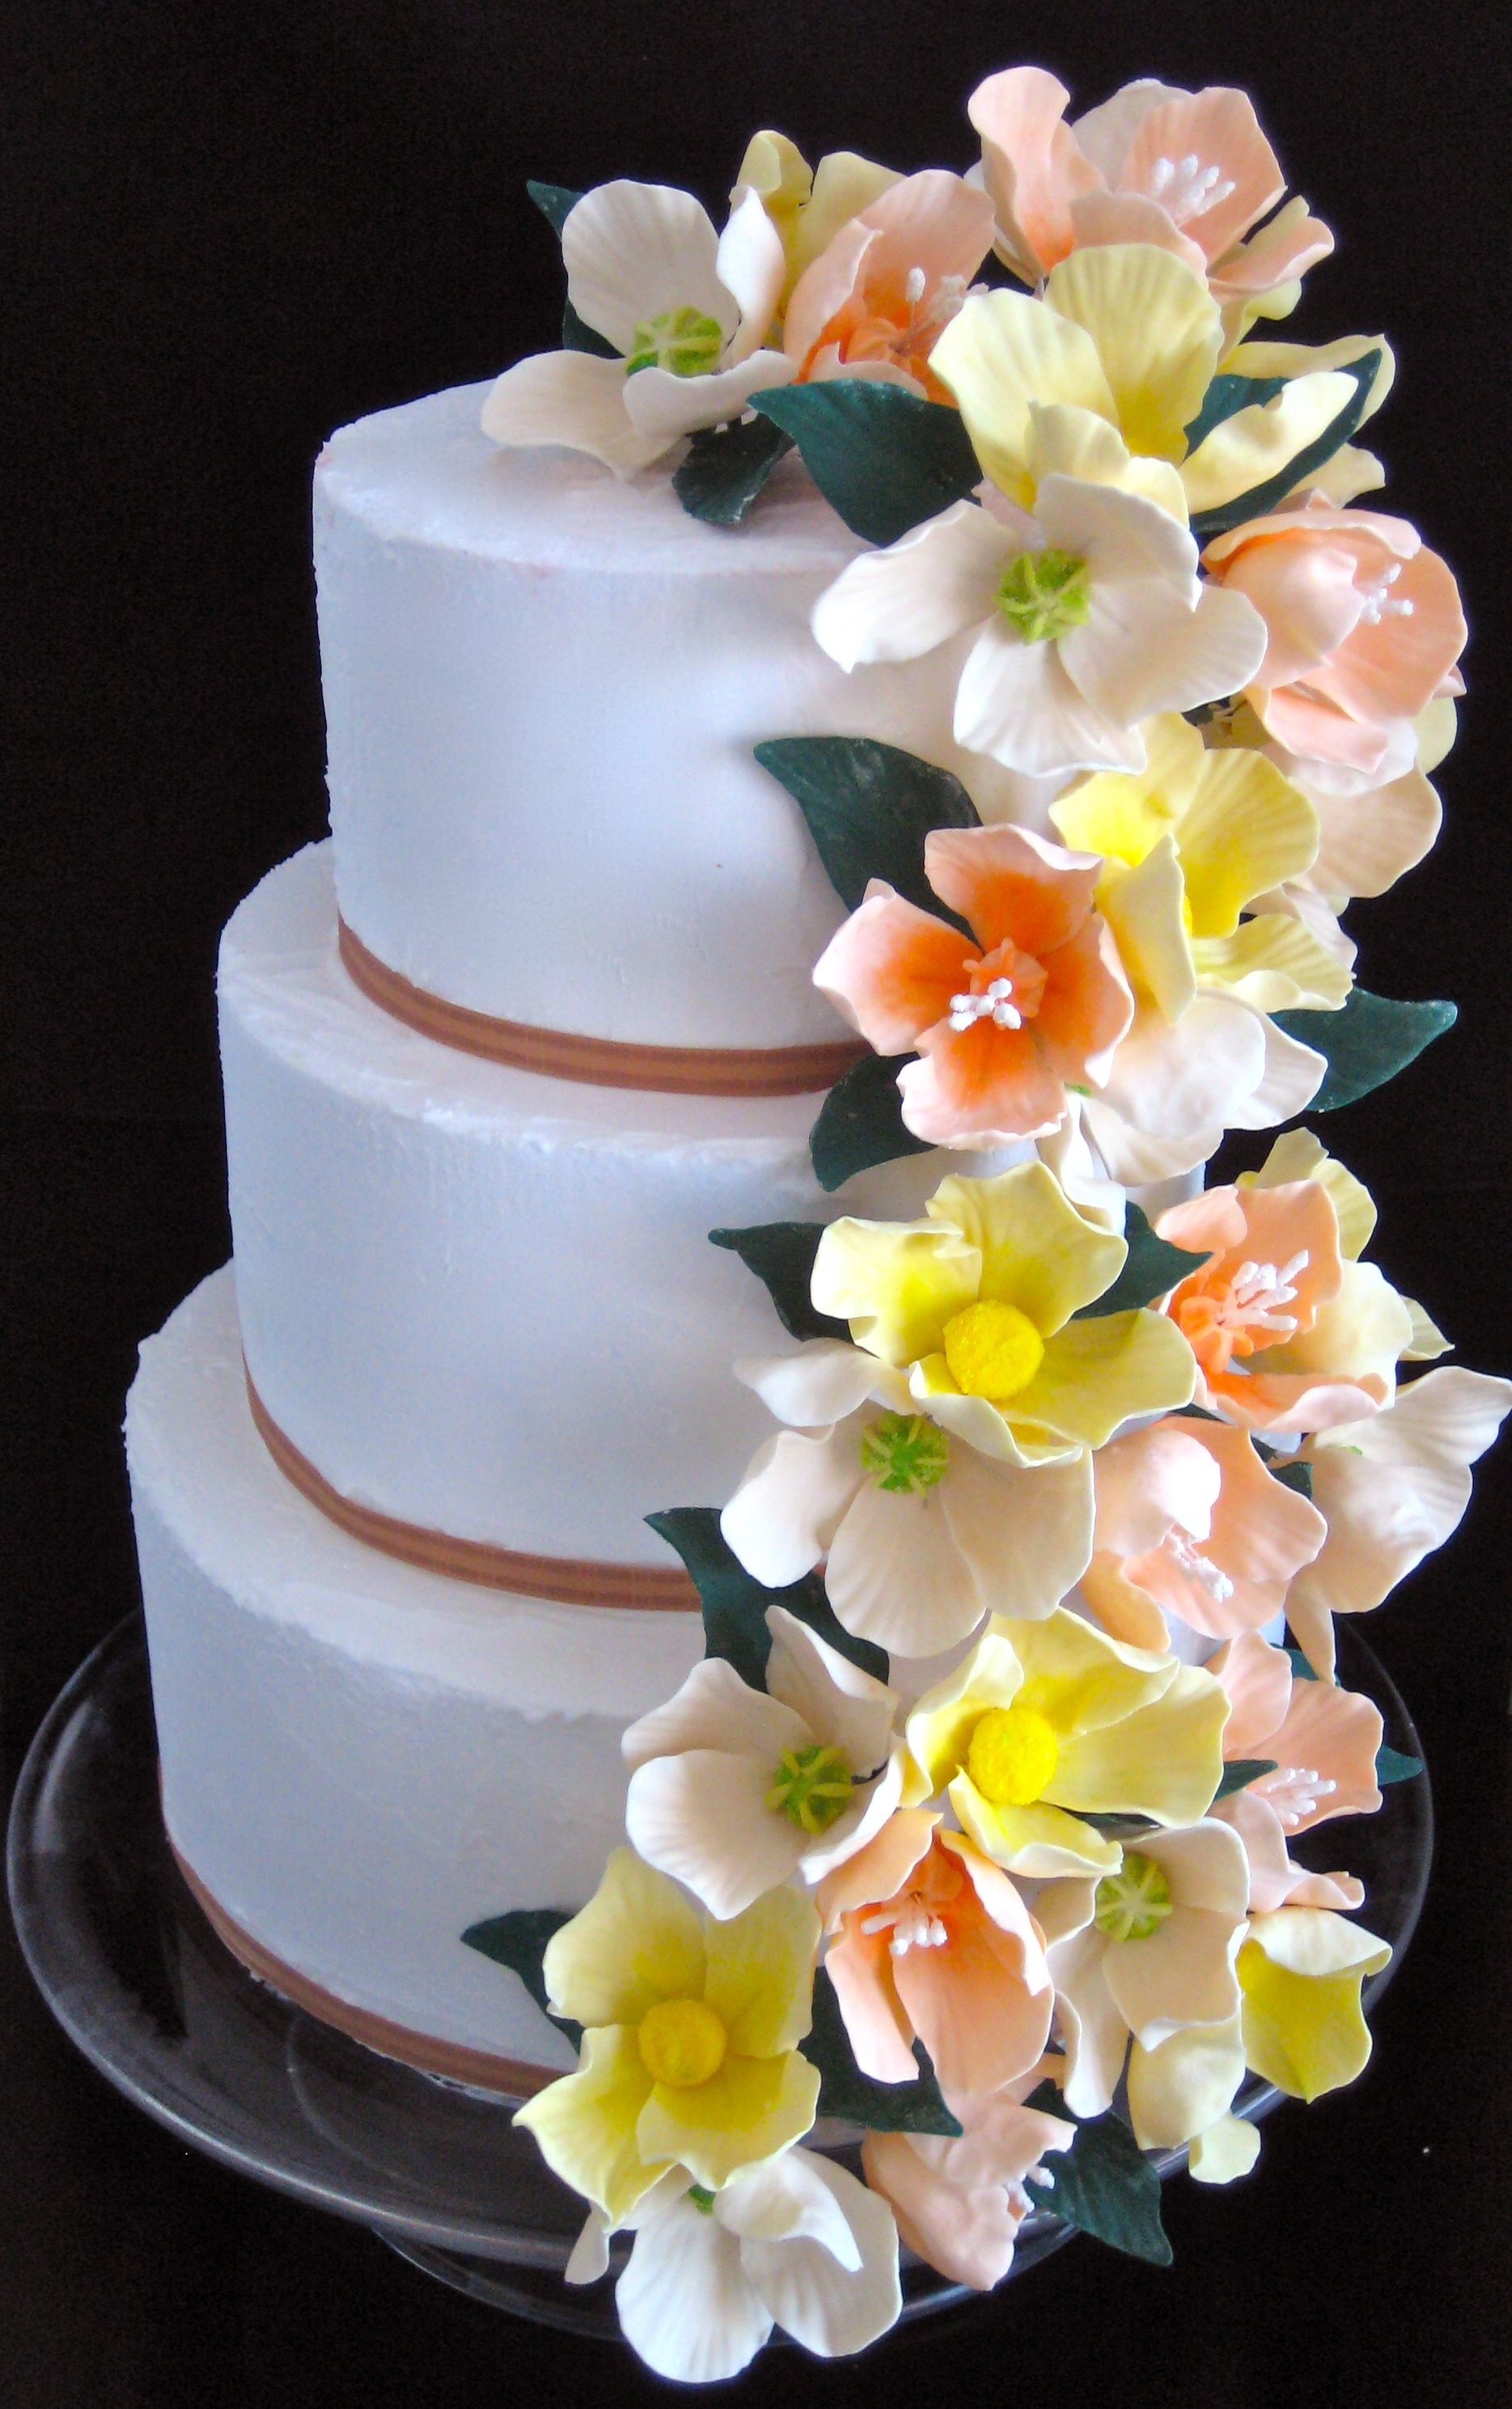 Cakes, white, yellow, orange, cake, Wedding, Sugar flower shop, Sugar flowers